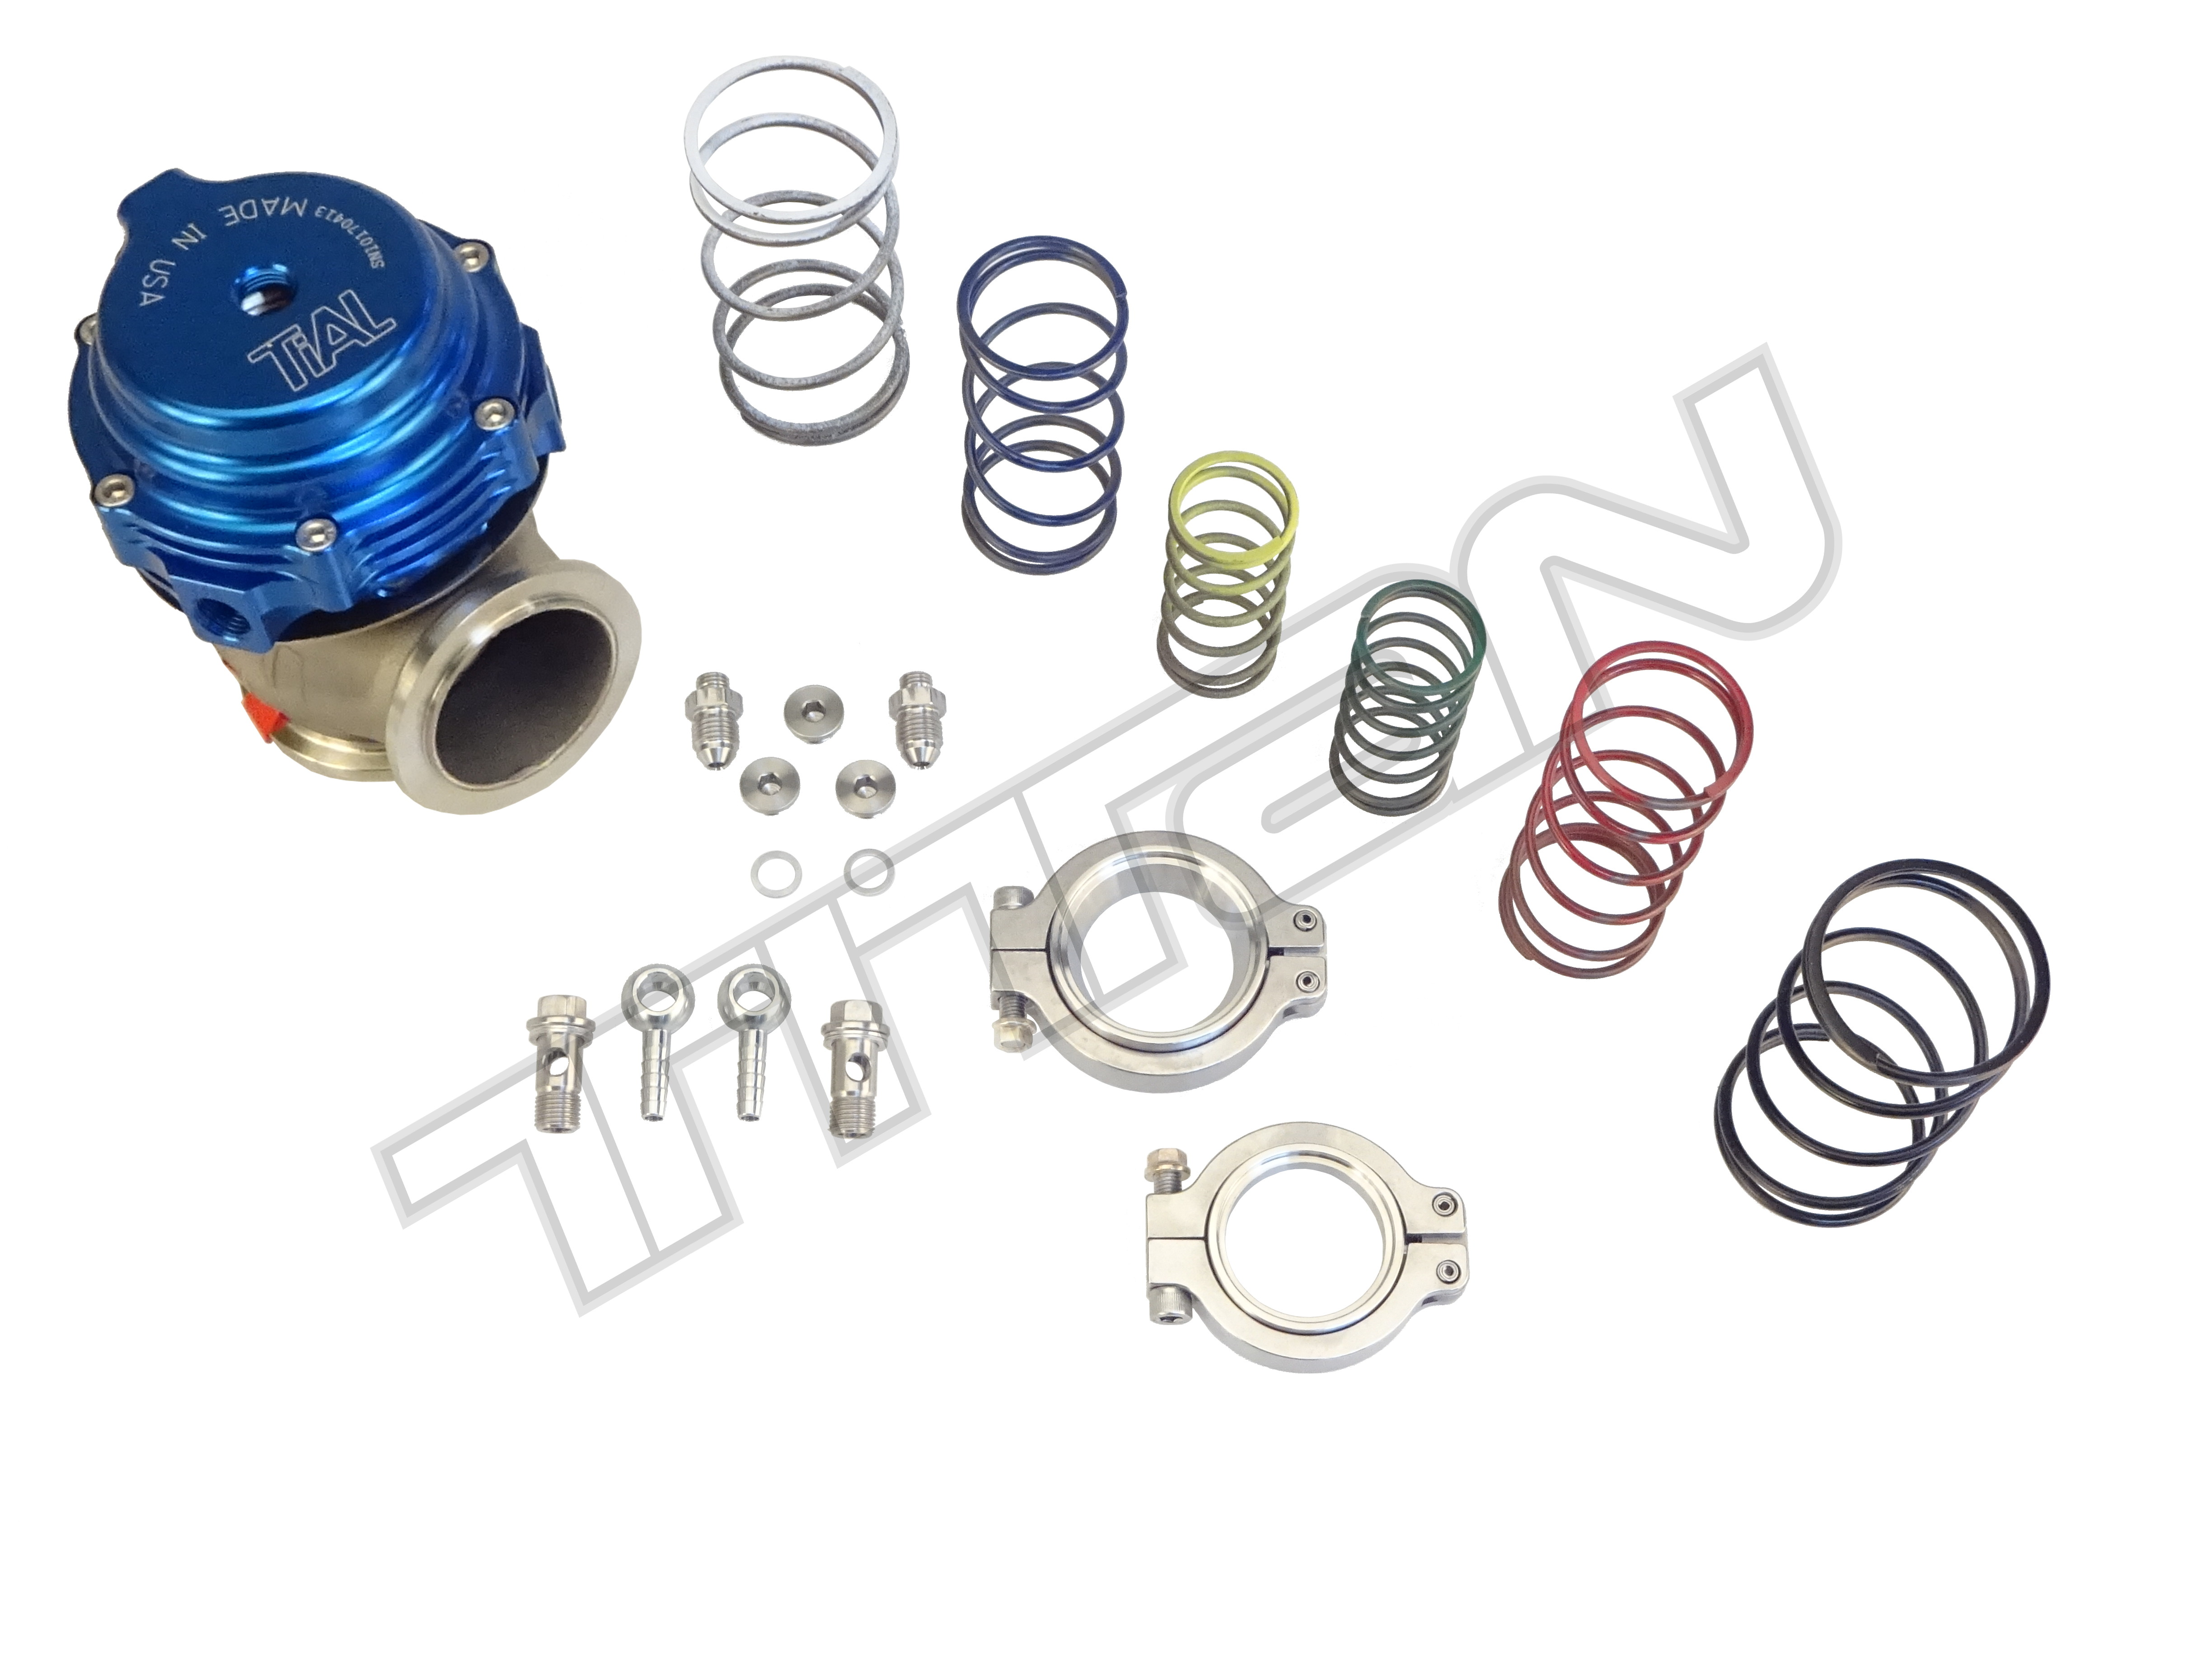 Tial Mvs Replacement Parts Bottom Topsimages